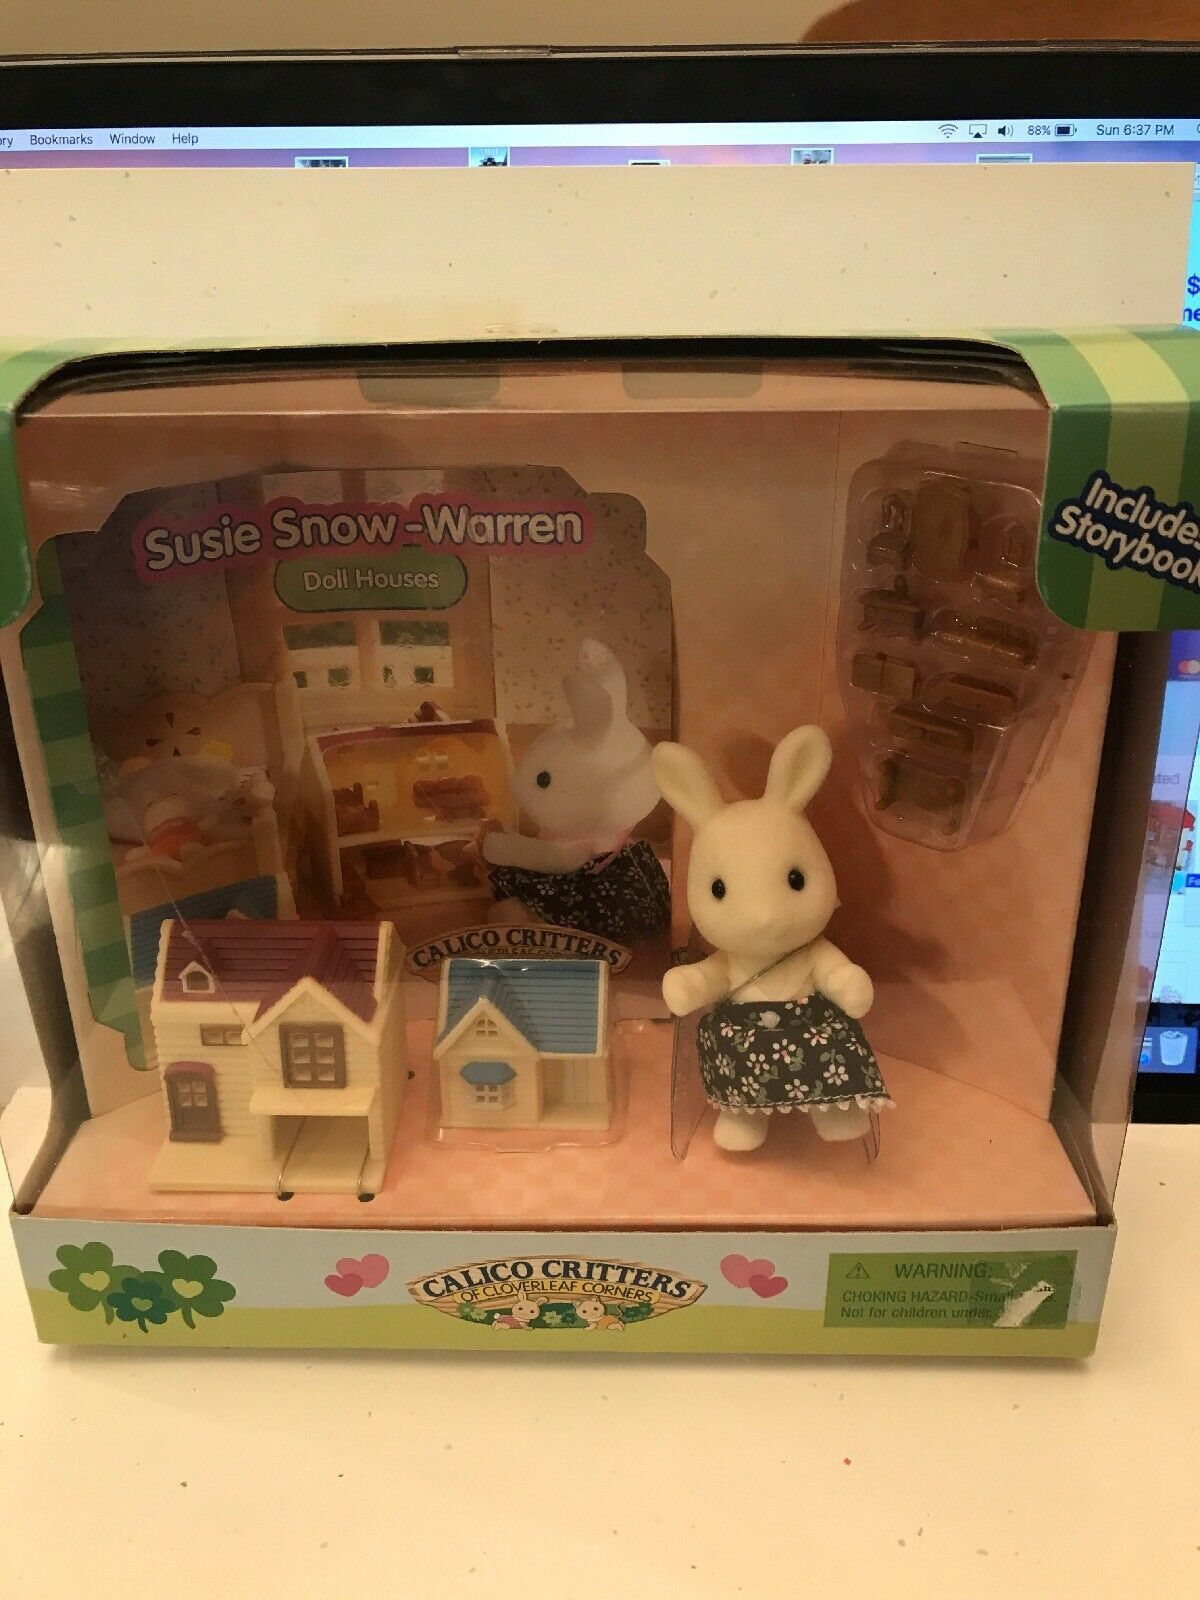 Calico Critters Susie Snow Warren Doll Houses with mini furniture  RARE 2005 NEW